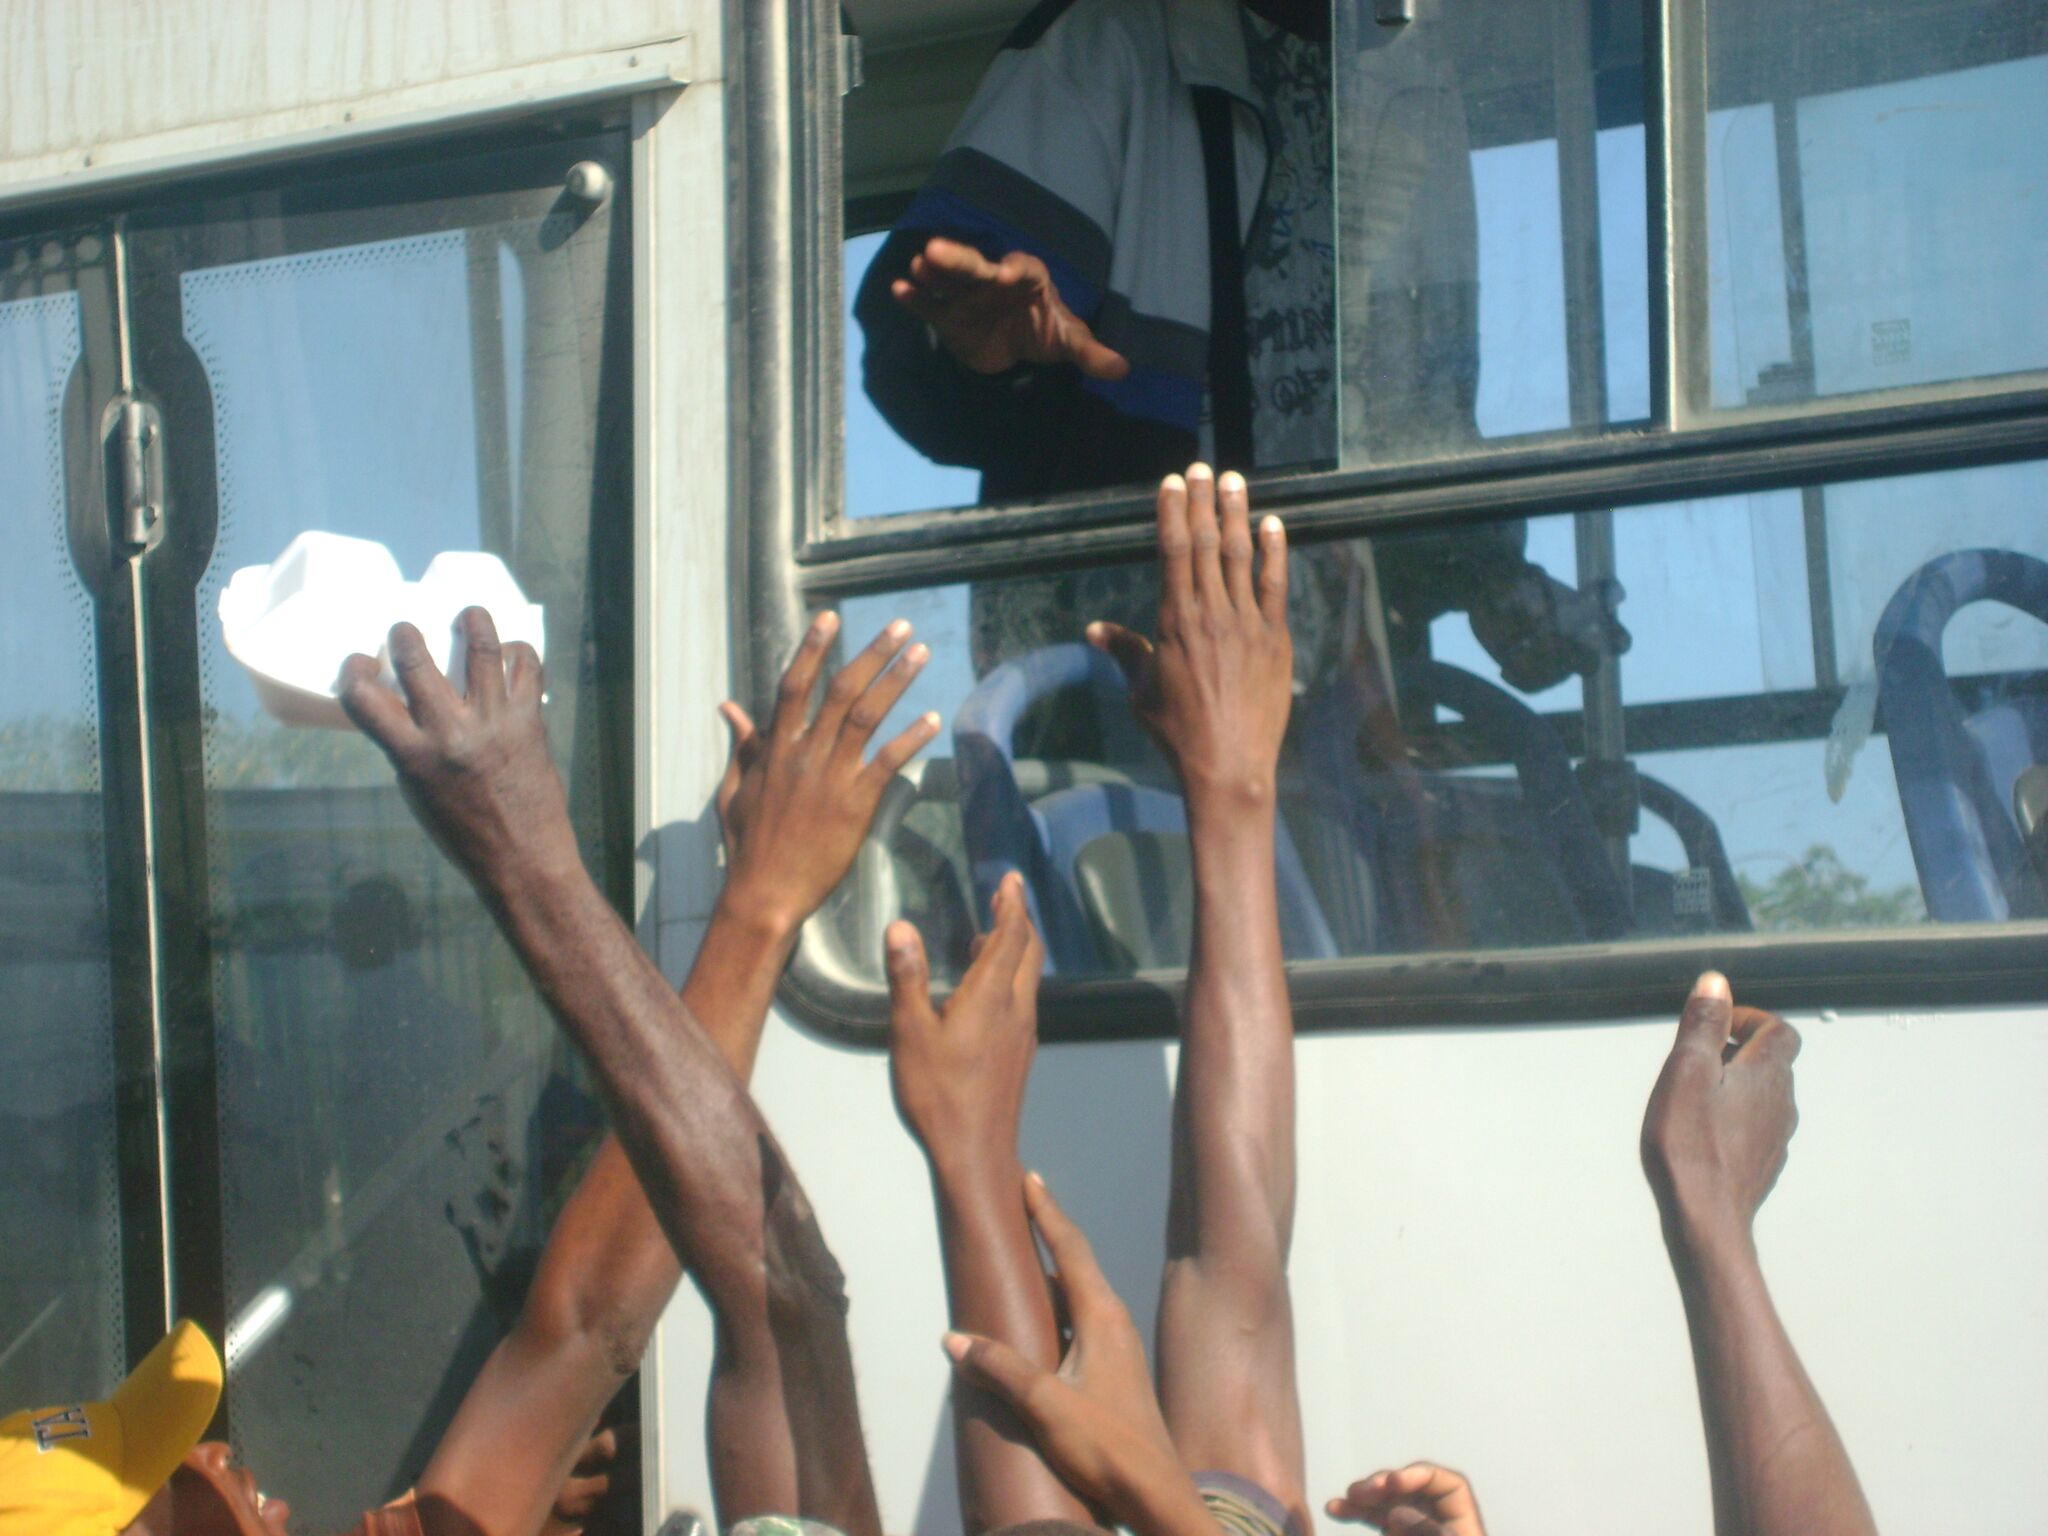 Hands reaching for food and water being distributed from a bus in Port au Prince, Haiti in the days following the earthquake.